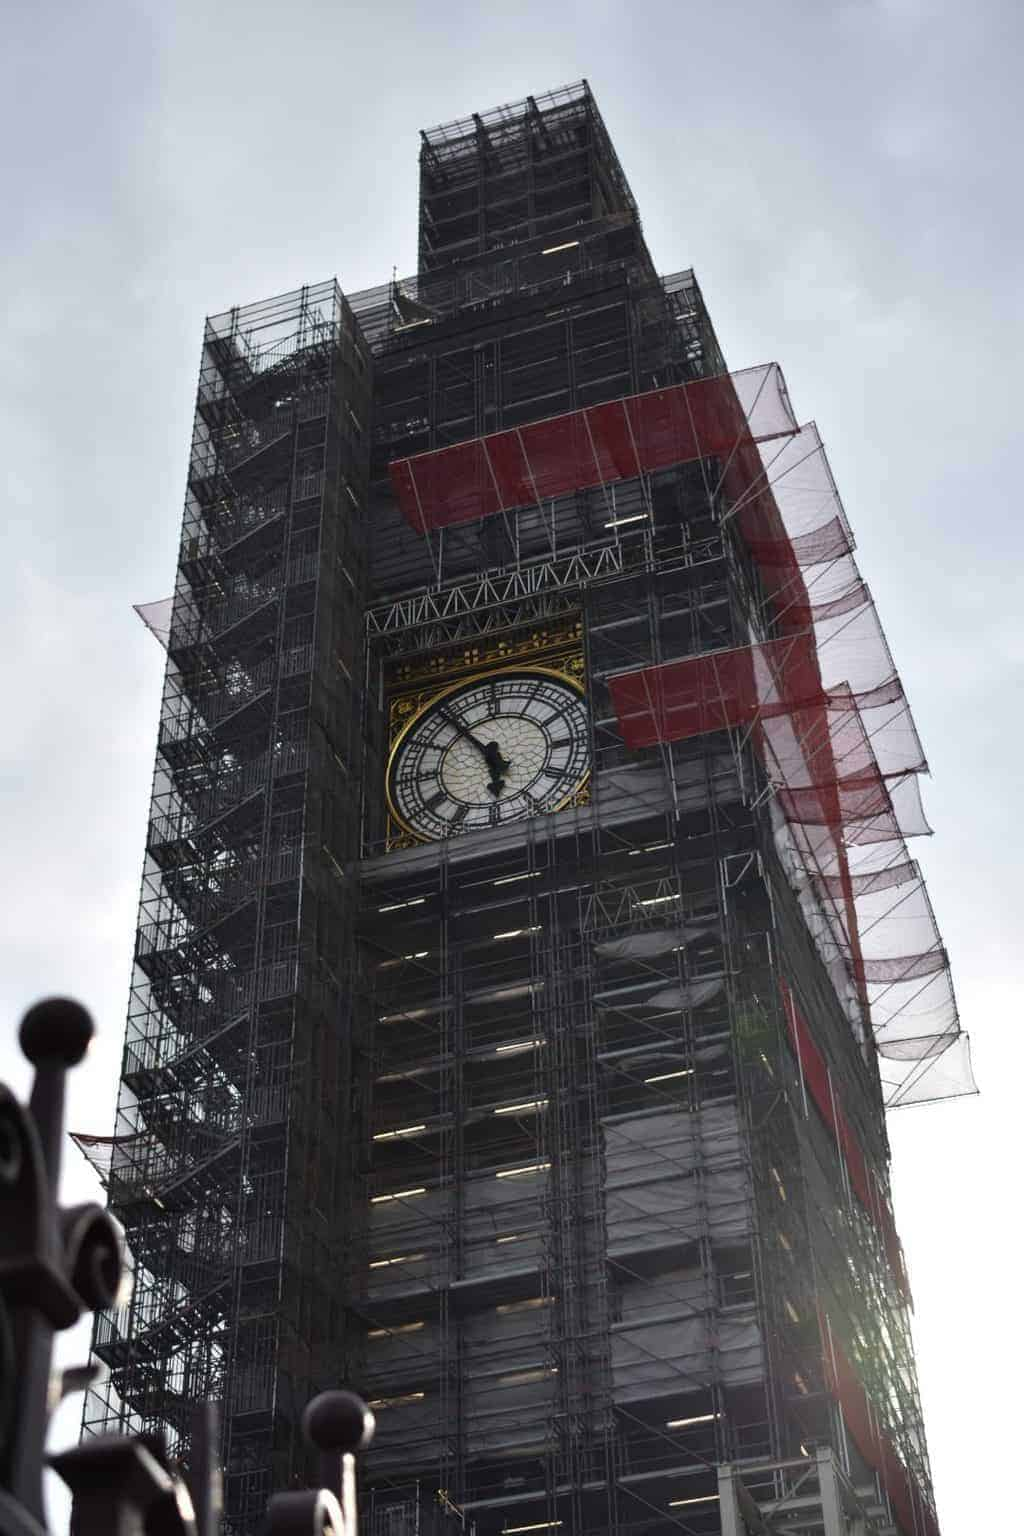 Scaffolding on Big Ben